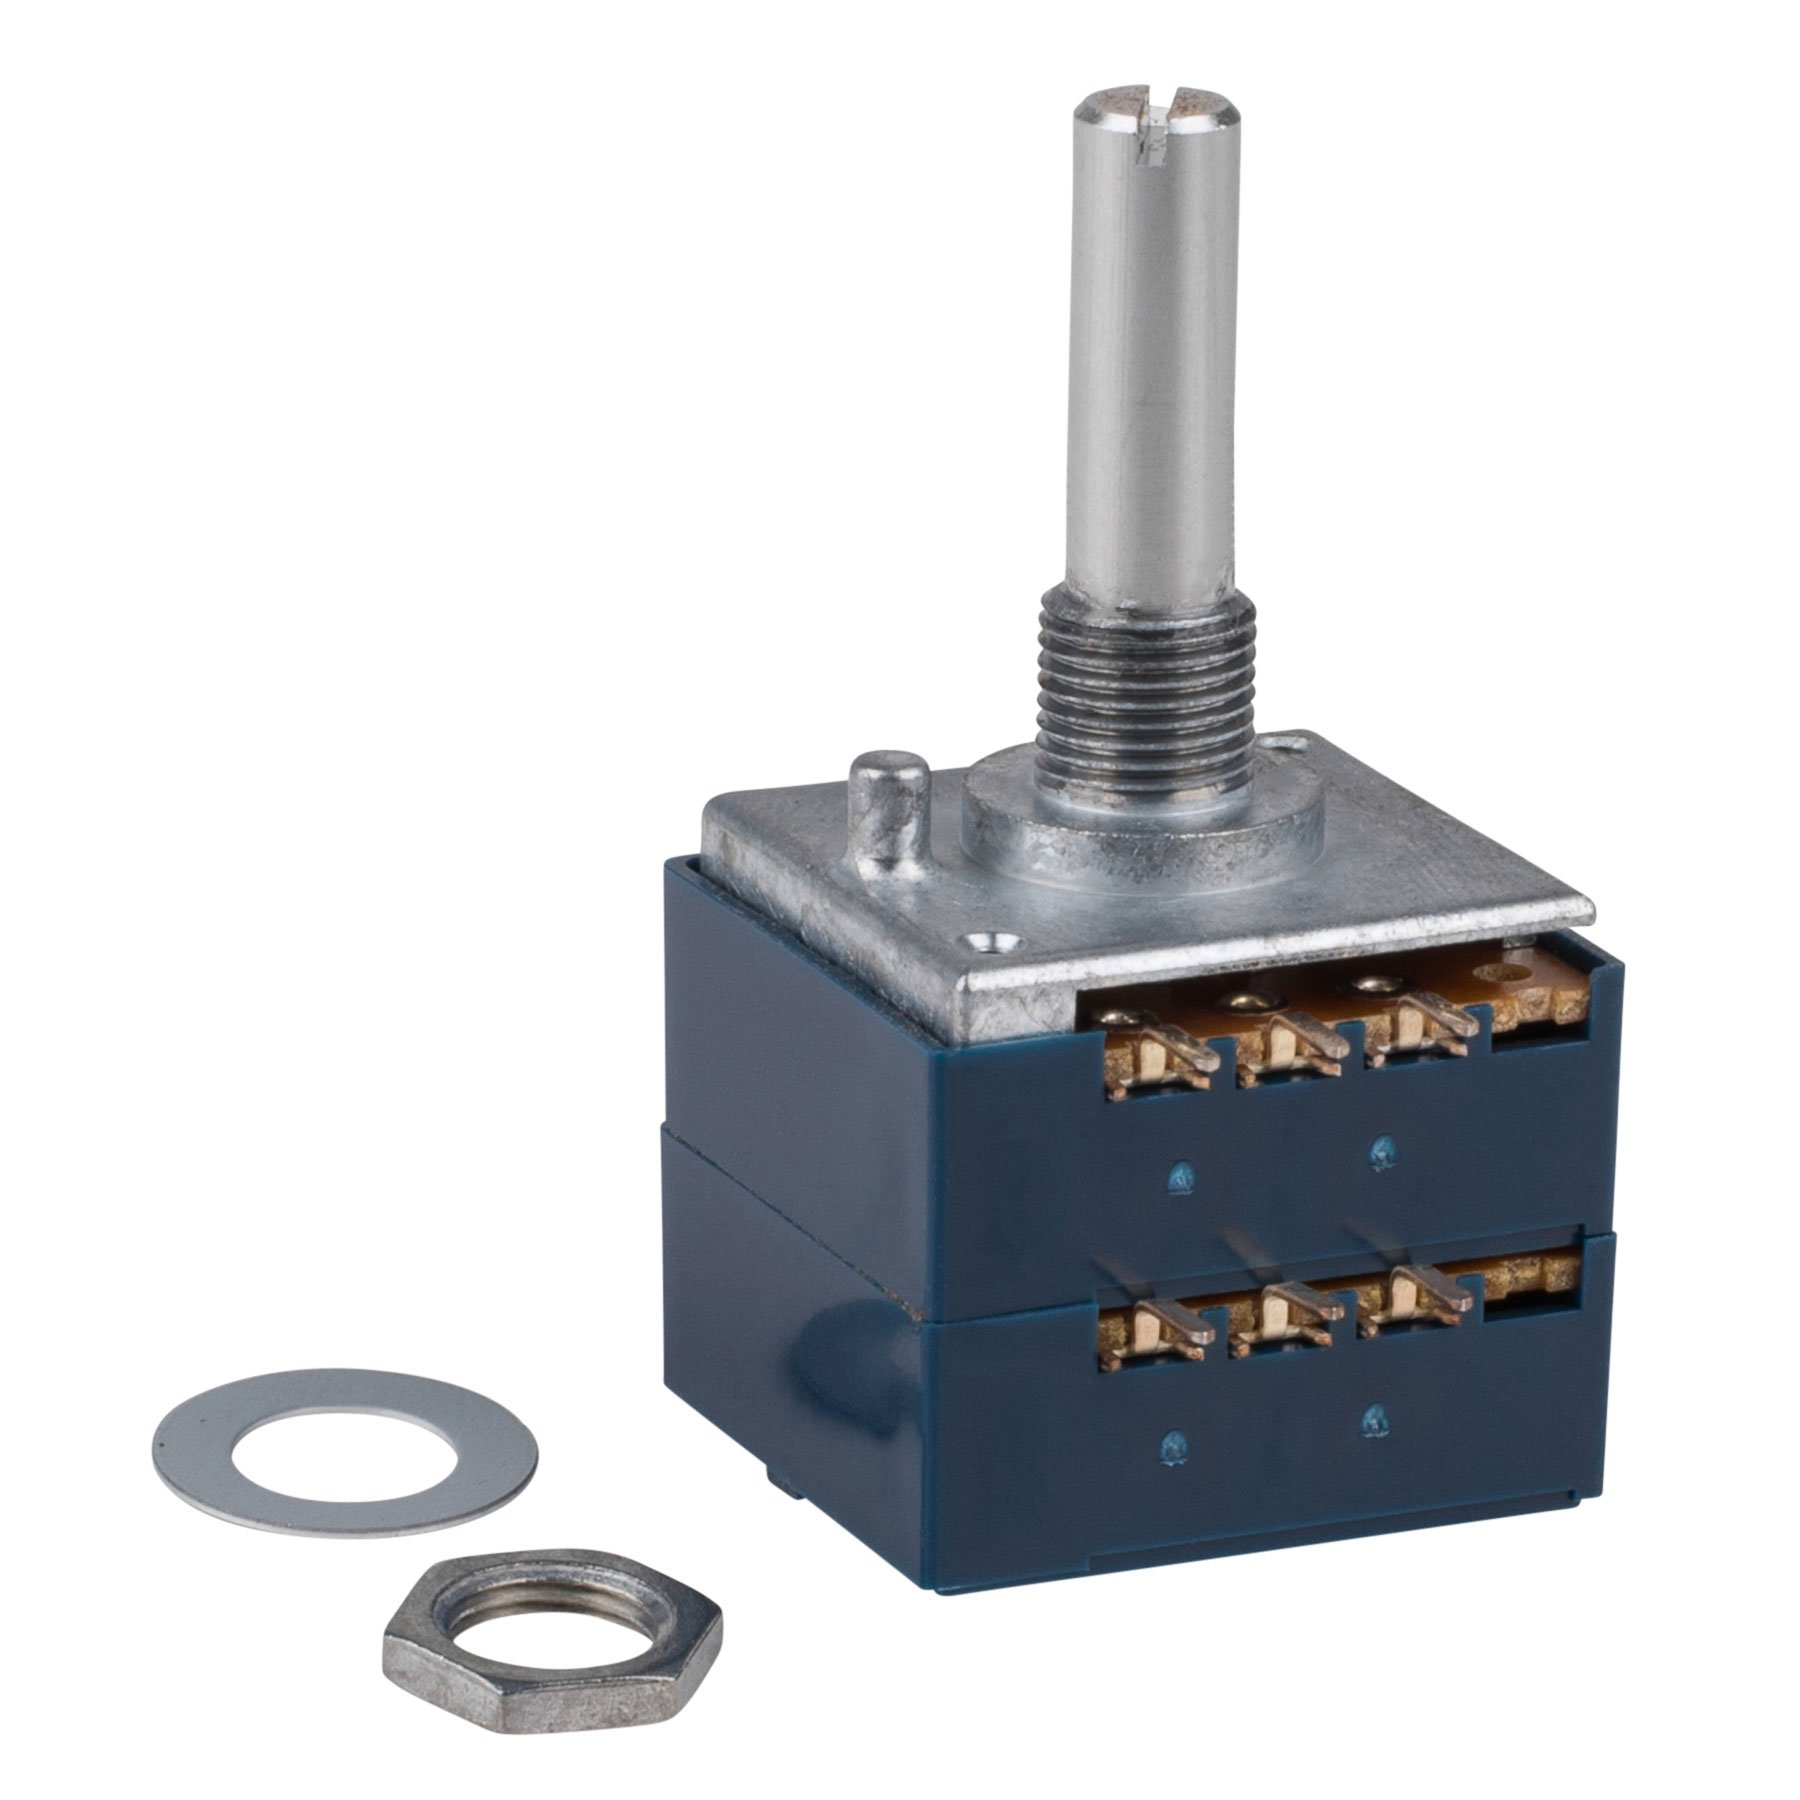 Parts Express ALPS 50KAX2 50K Ohm Audio Taper Stereo Potentiometer 6mm Shaft by Parts Express (Image #1)